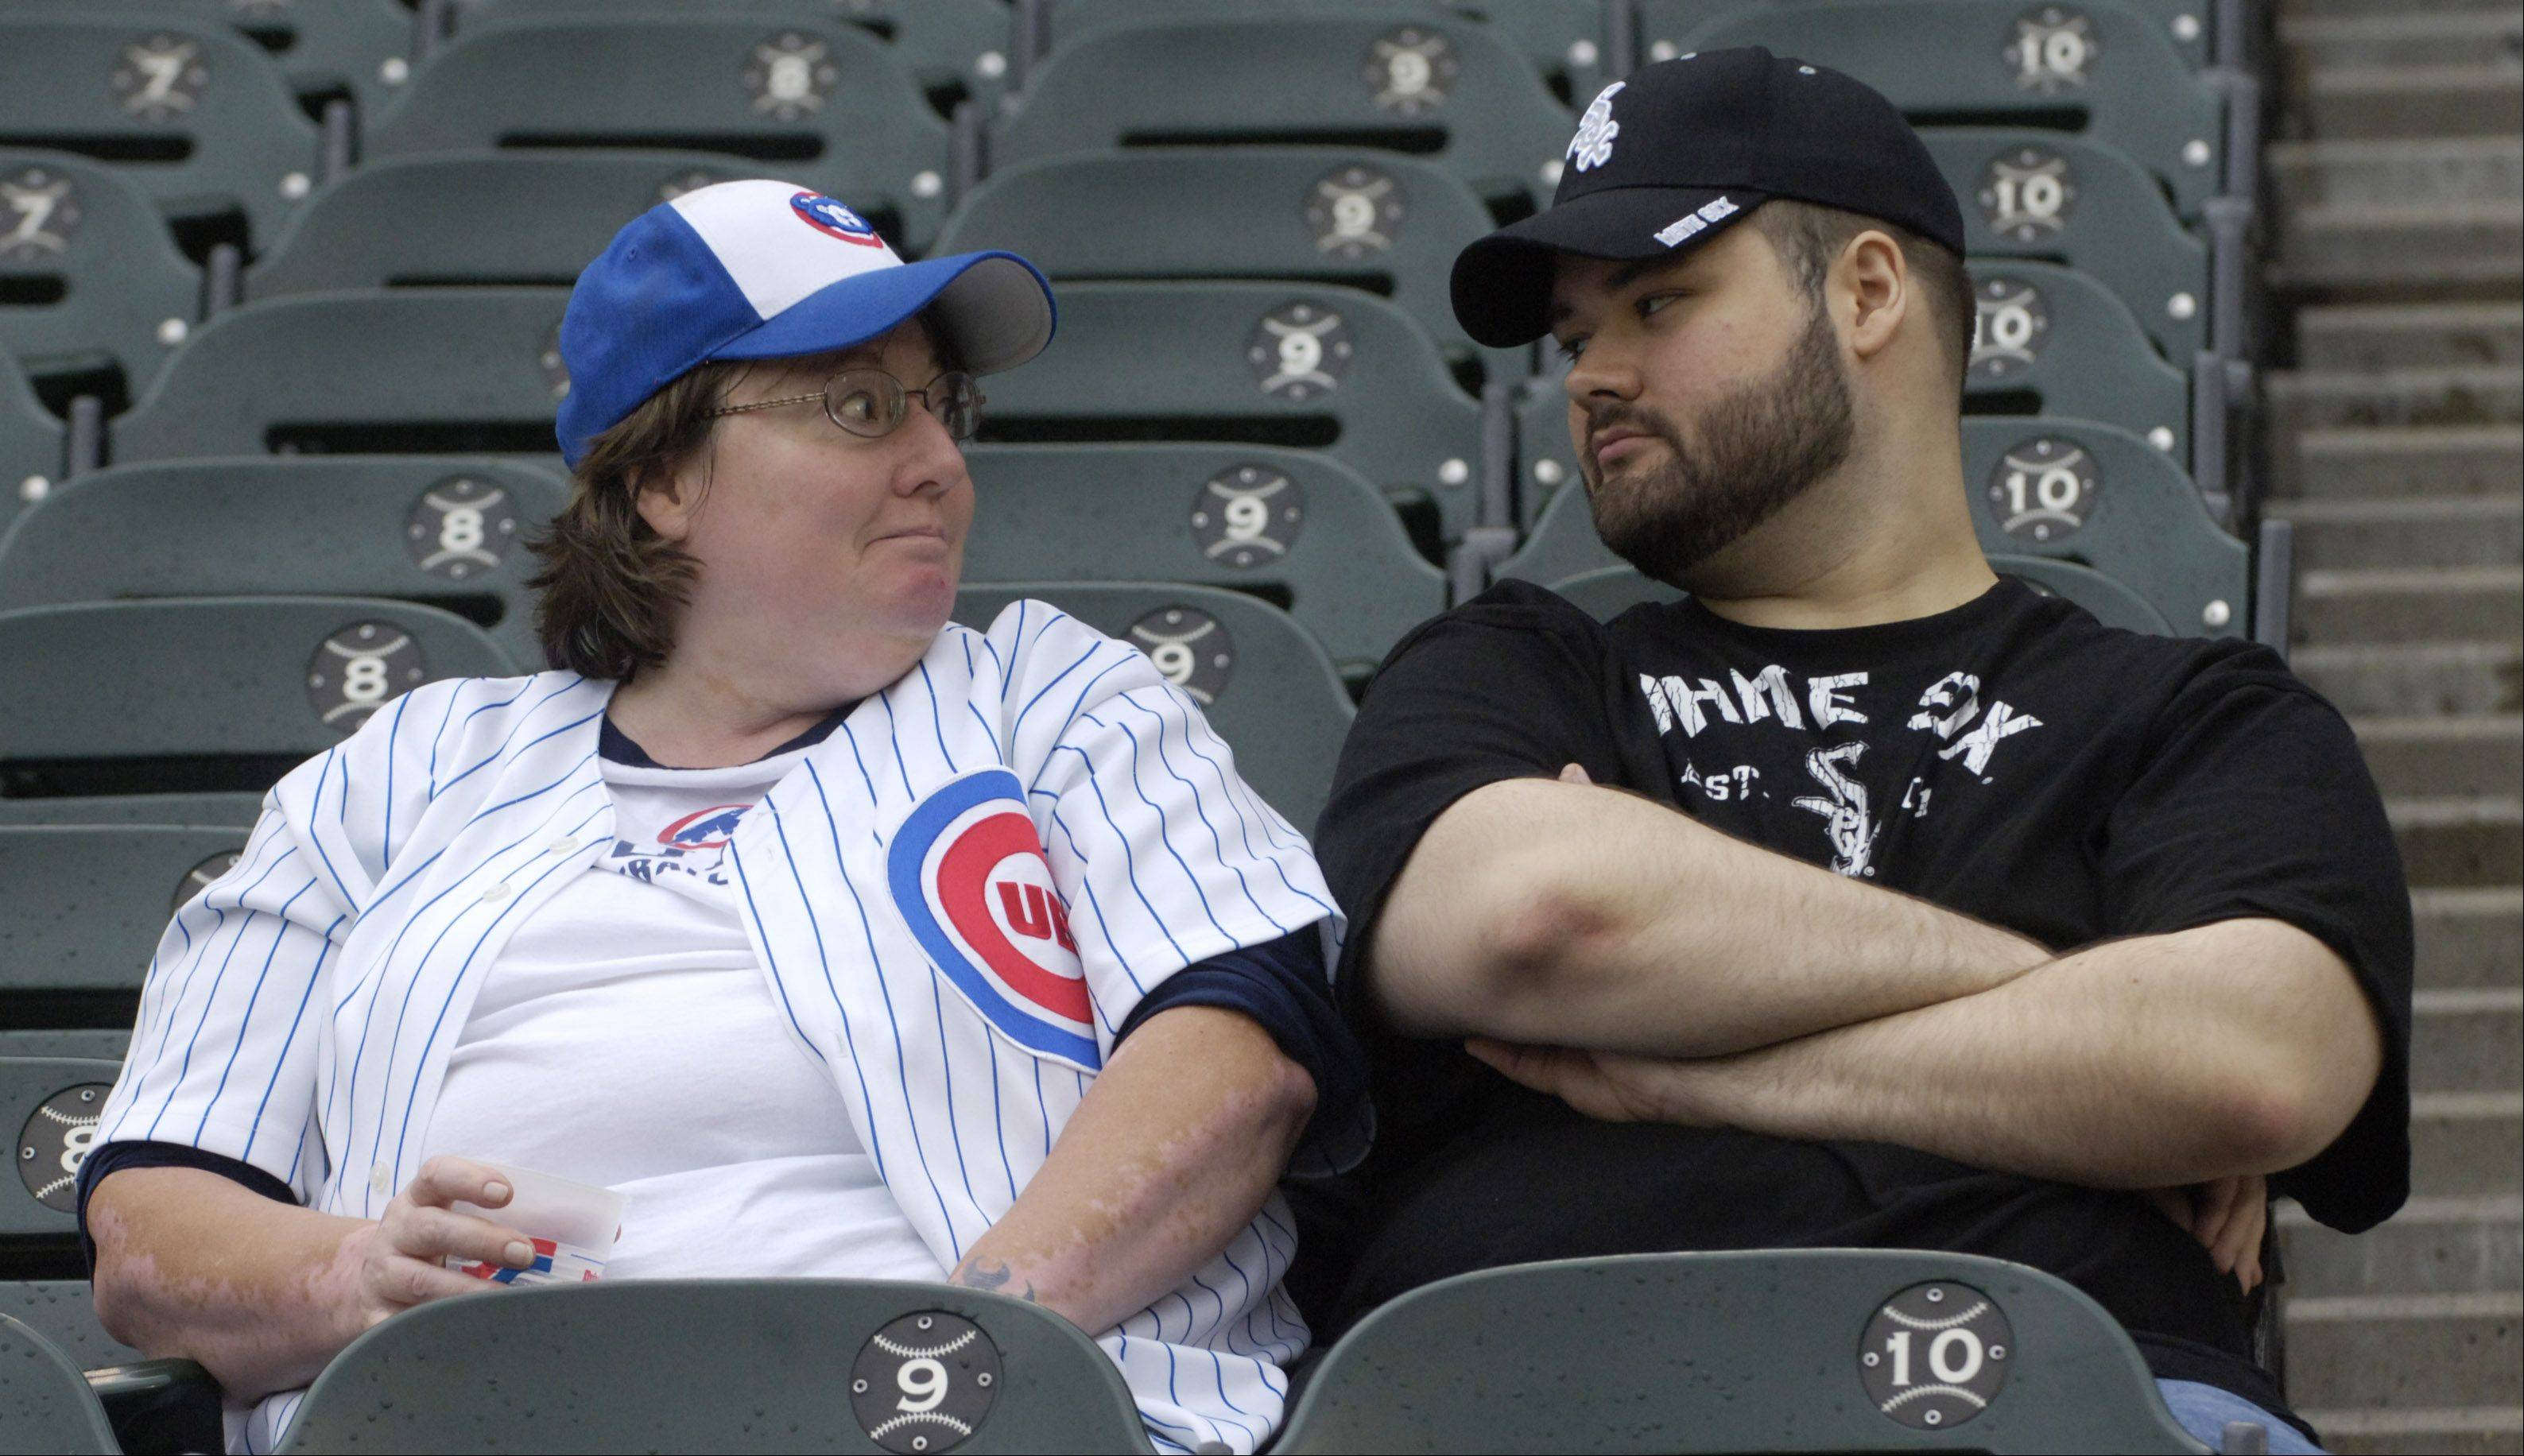 A Cubs and a Sox fan seated together at Wednesday's game at U.S. Cellular Field.